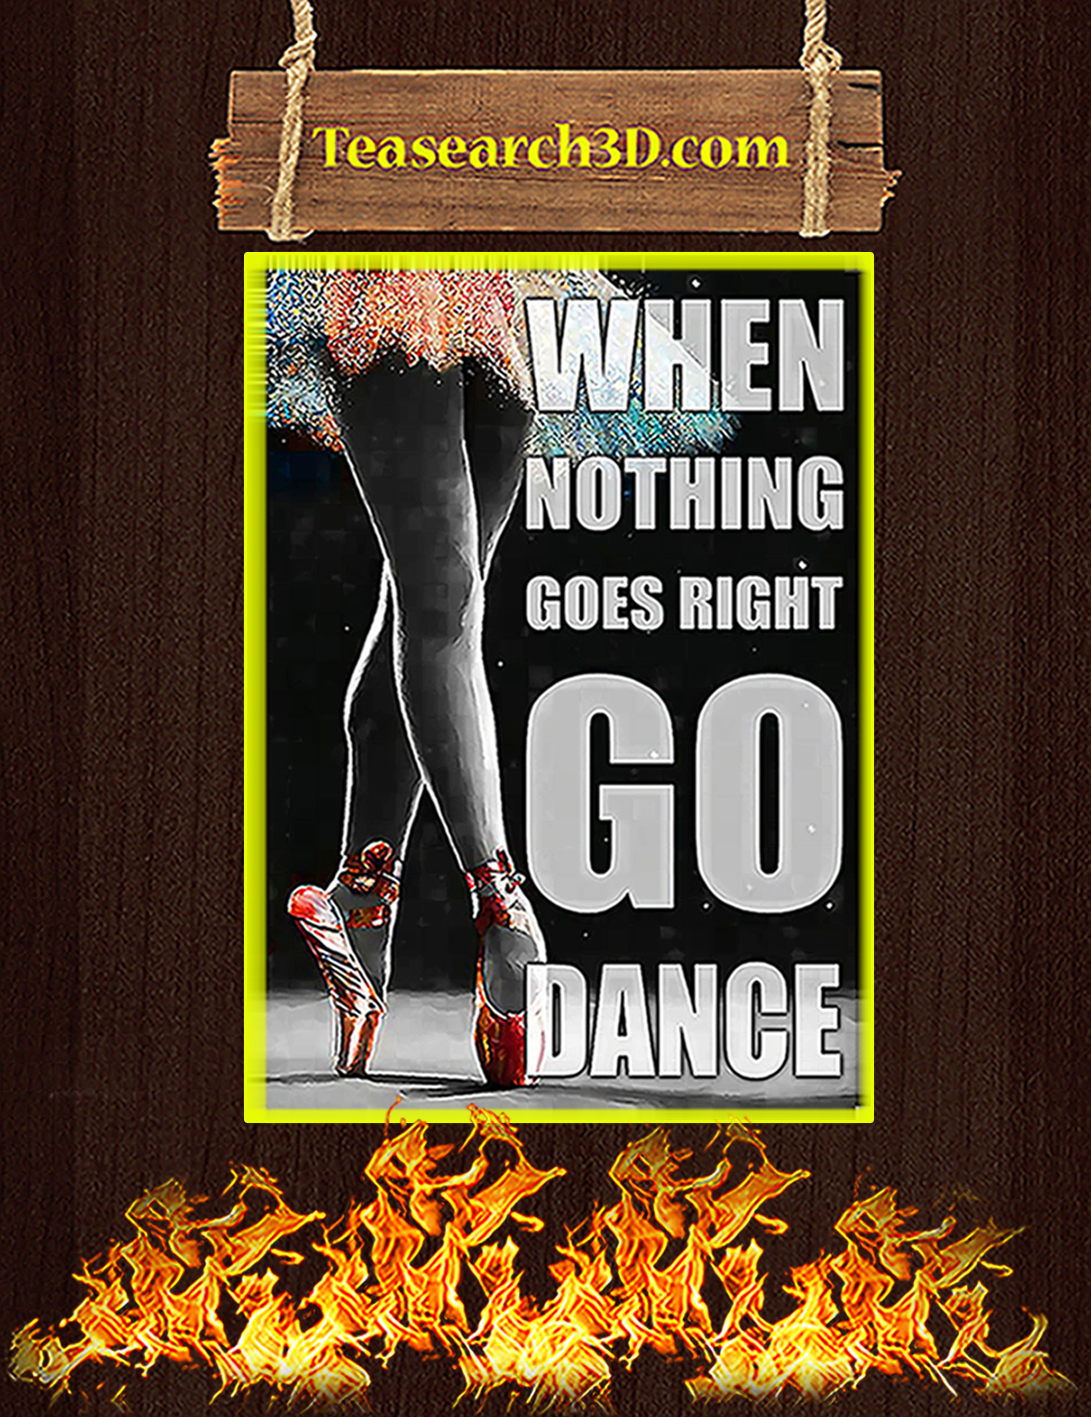 Ballet when nothing goes right go dance poster A2